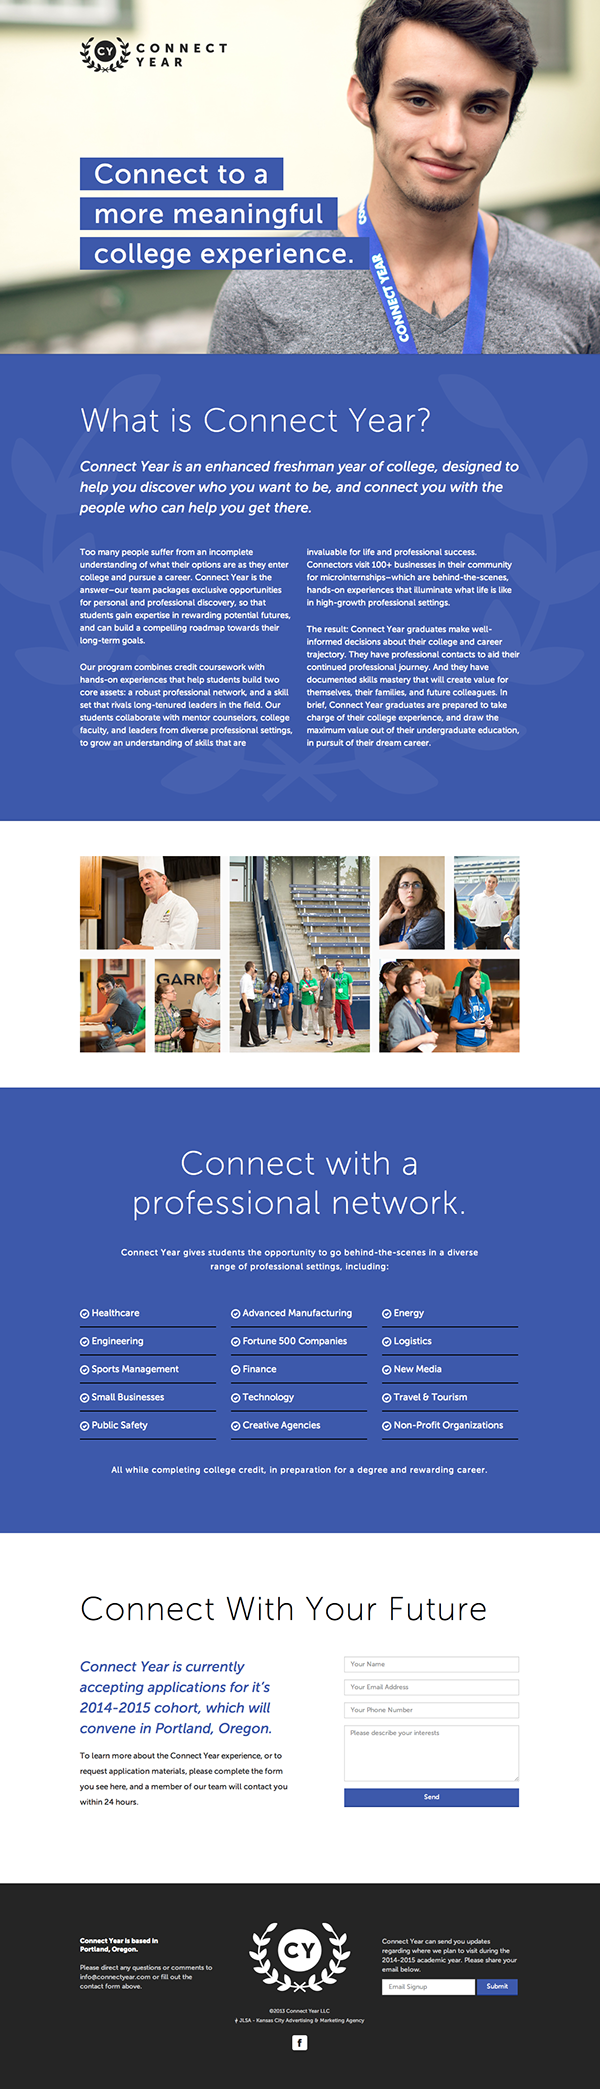 landing page Single Page Website college